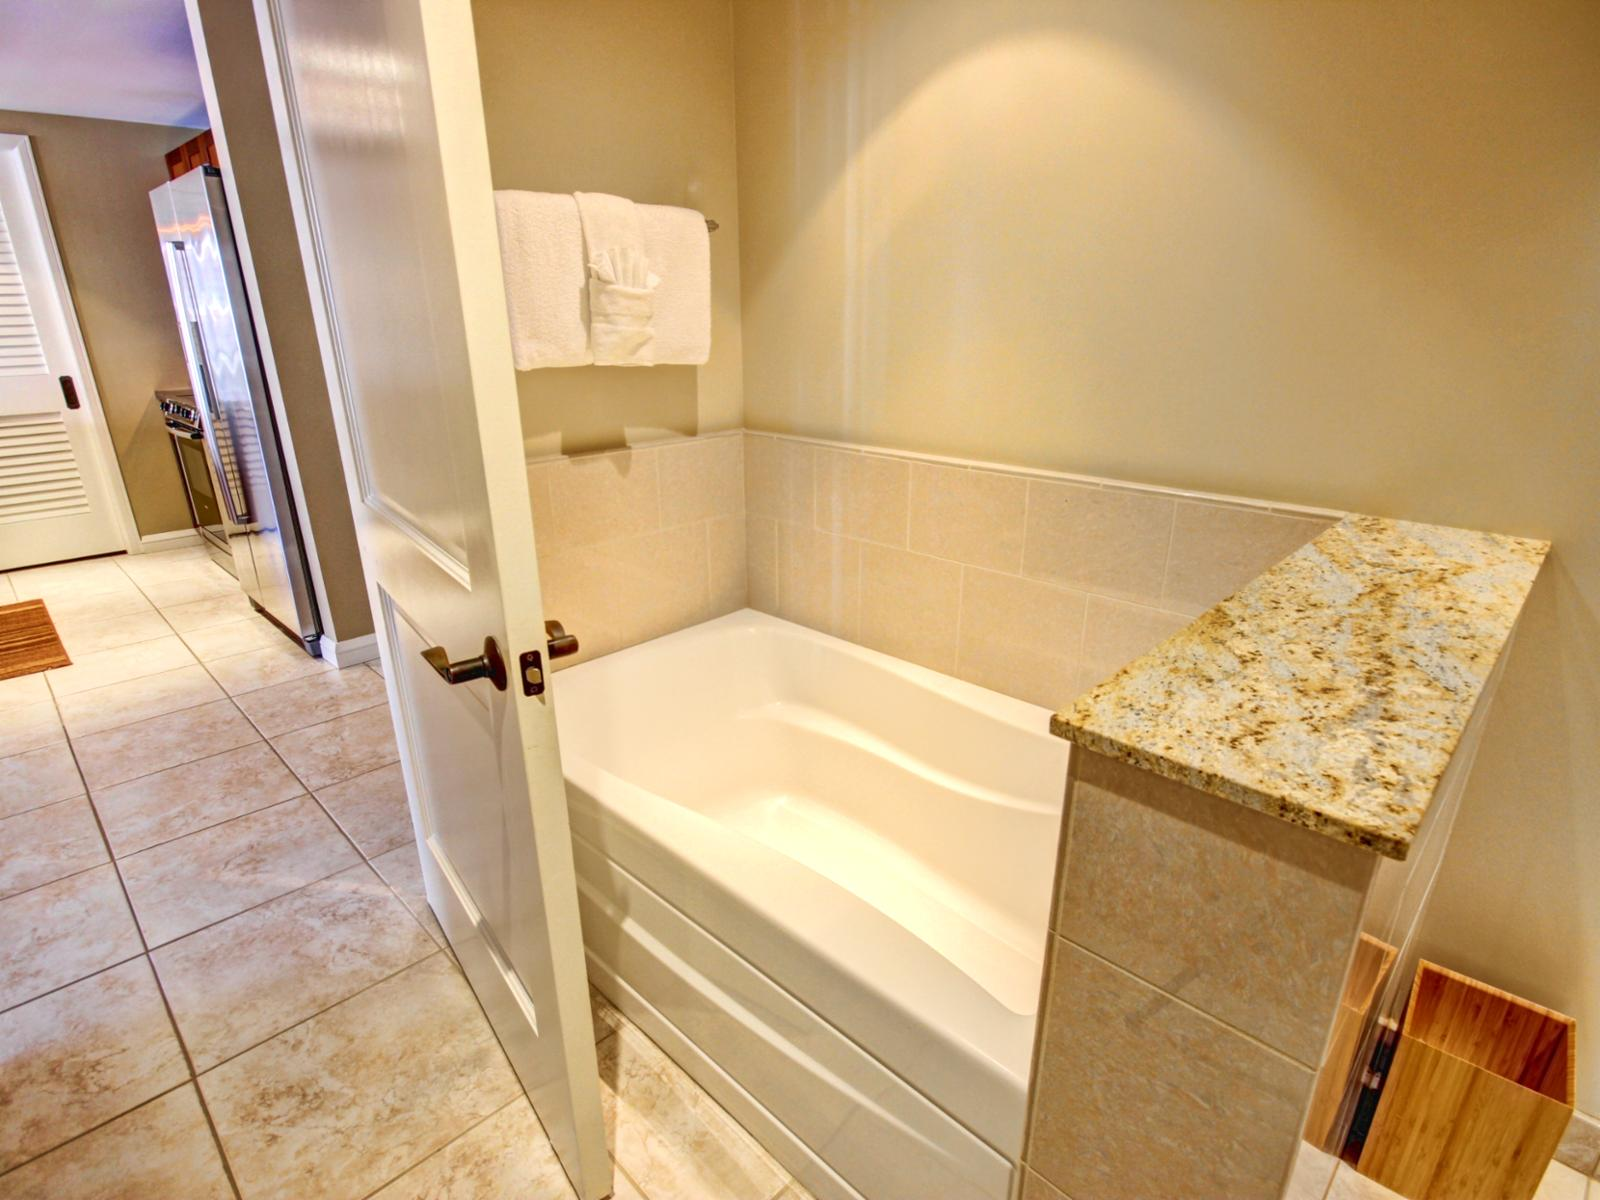 Separate bathtub in the guest bathroom with access from living room and the bedroom.